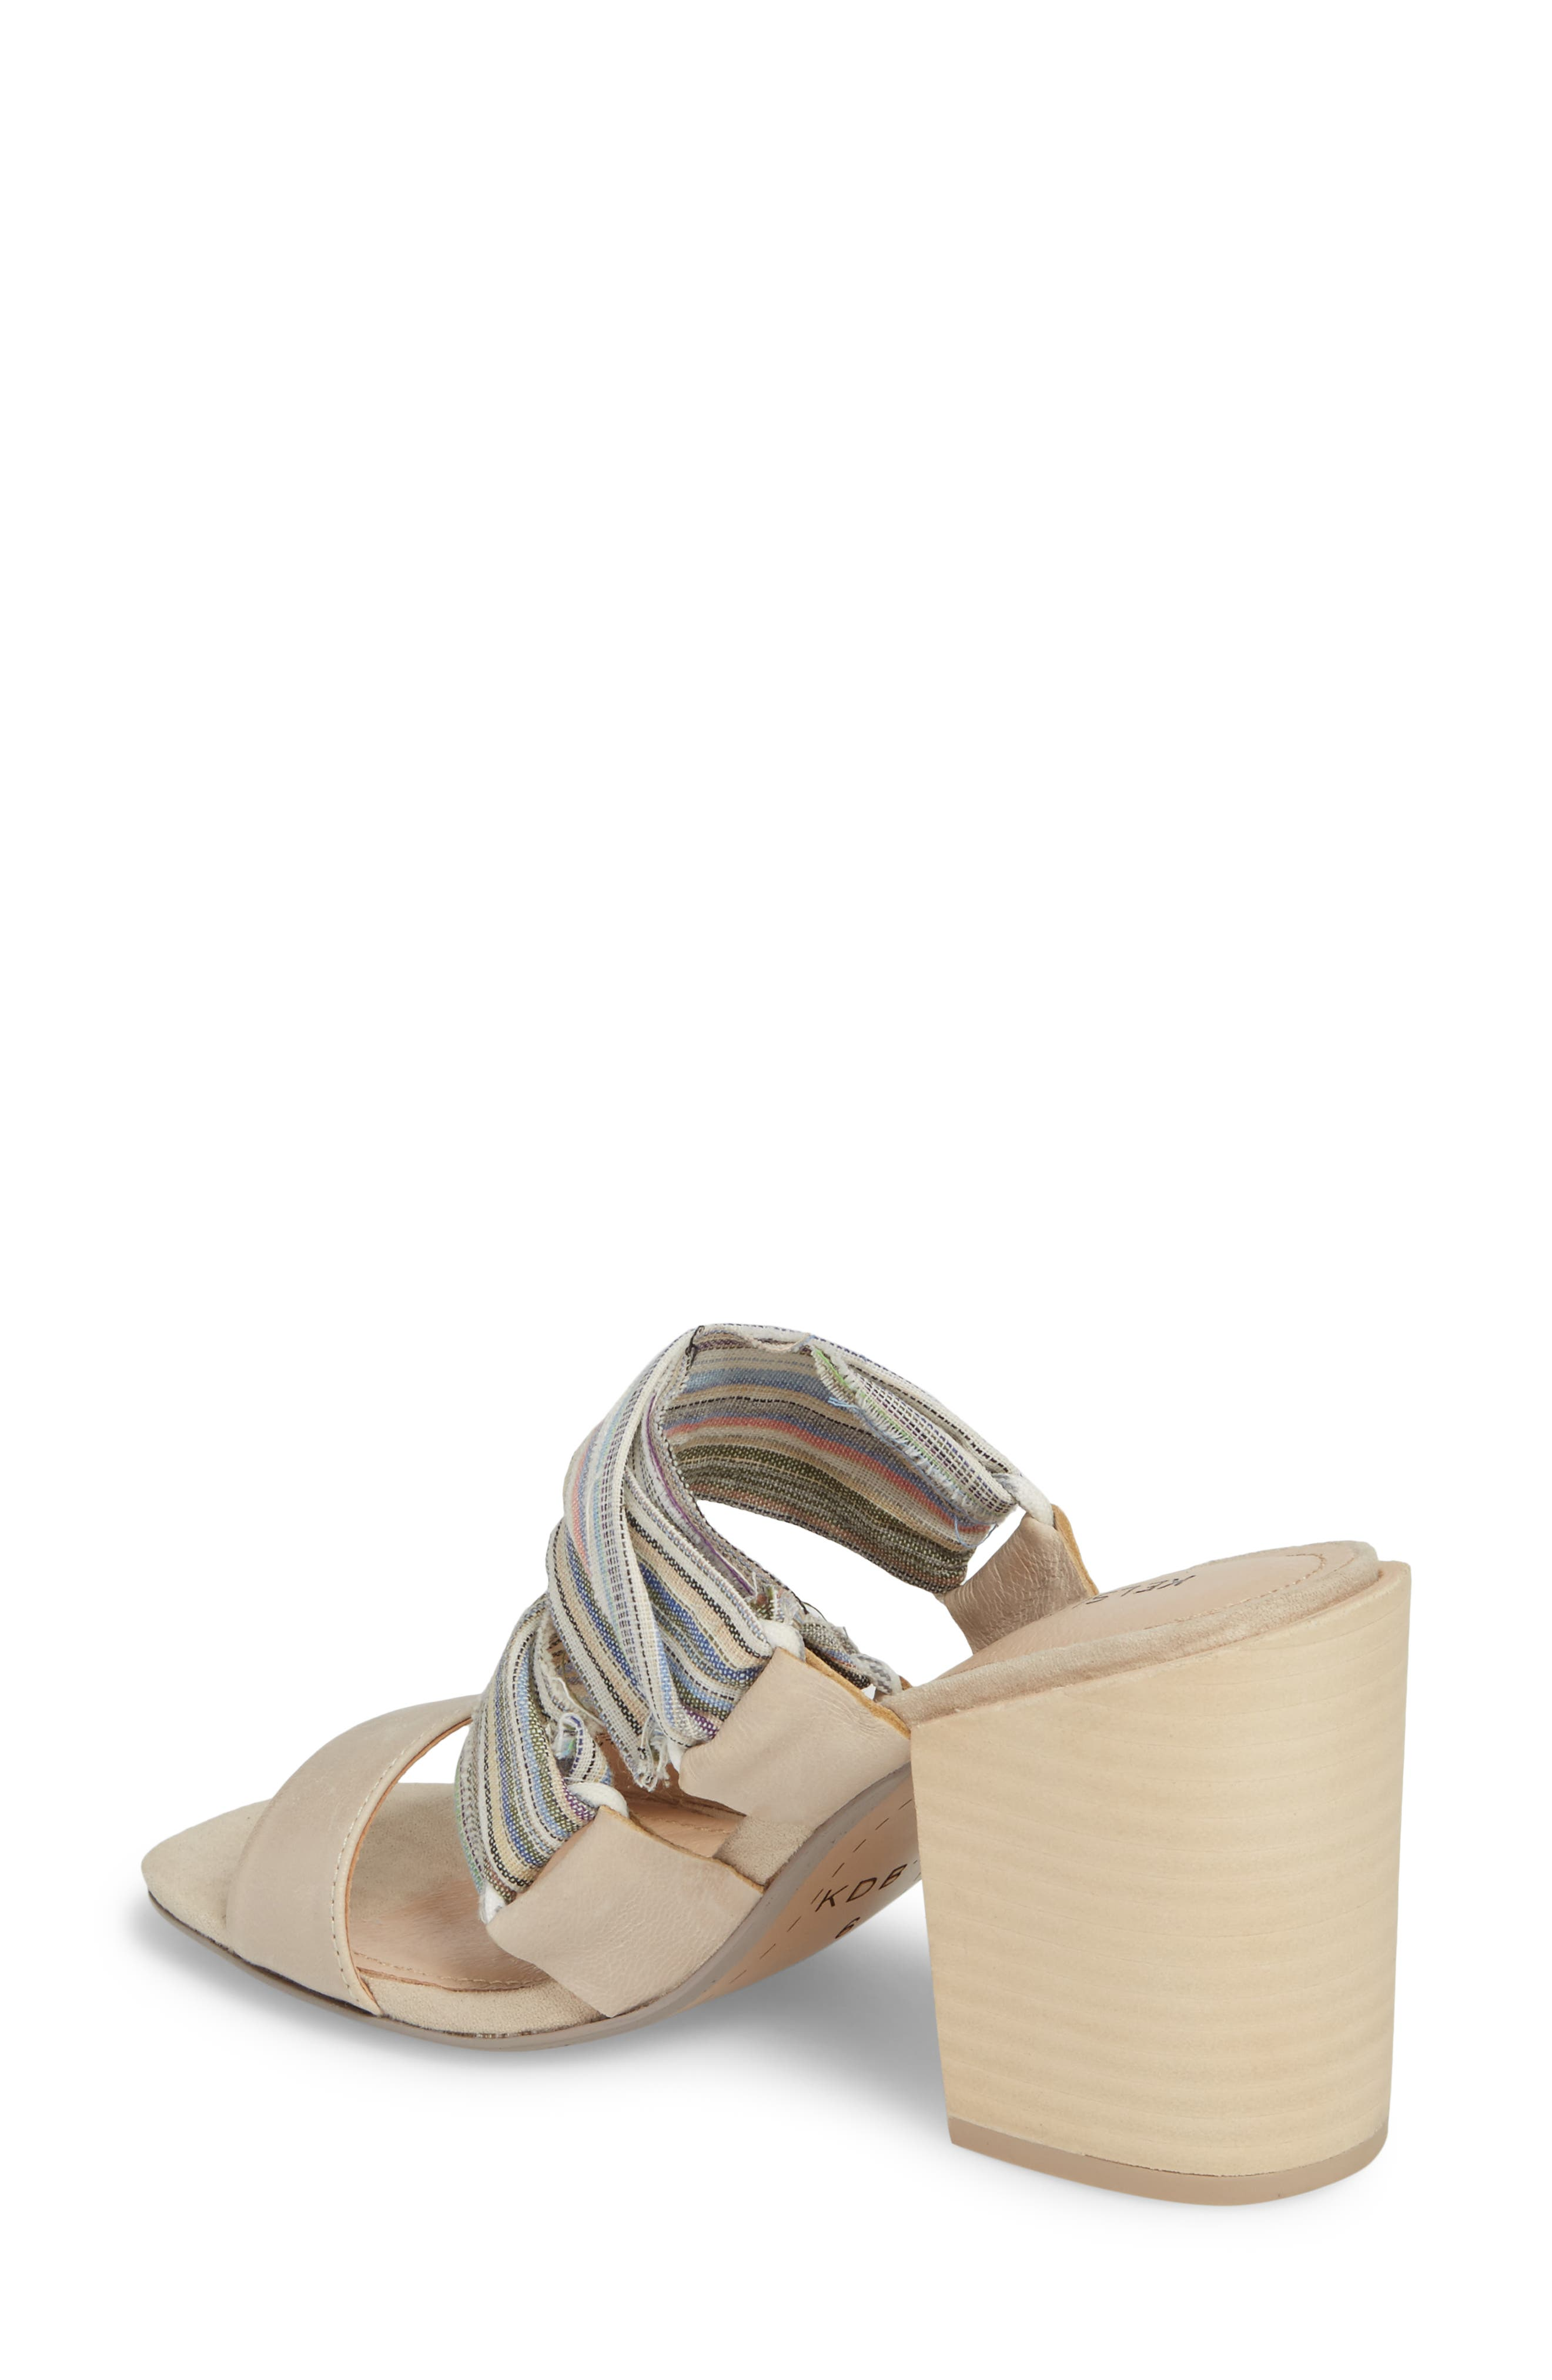 Monaco Block Heel Sandal,                             Alternate thumbnail 2, color,                             Bone/ Multi